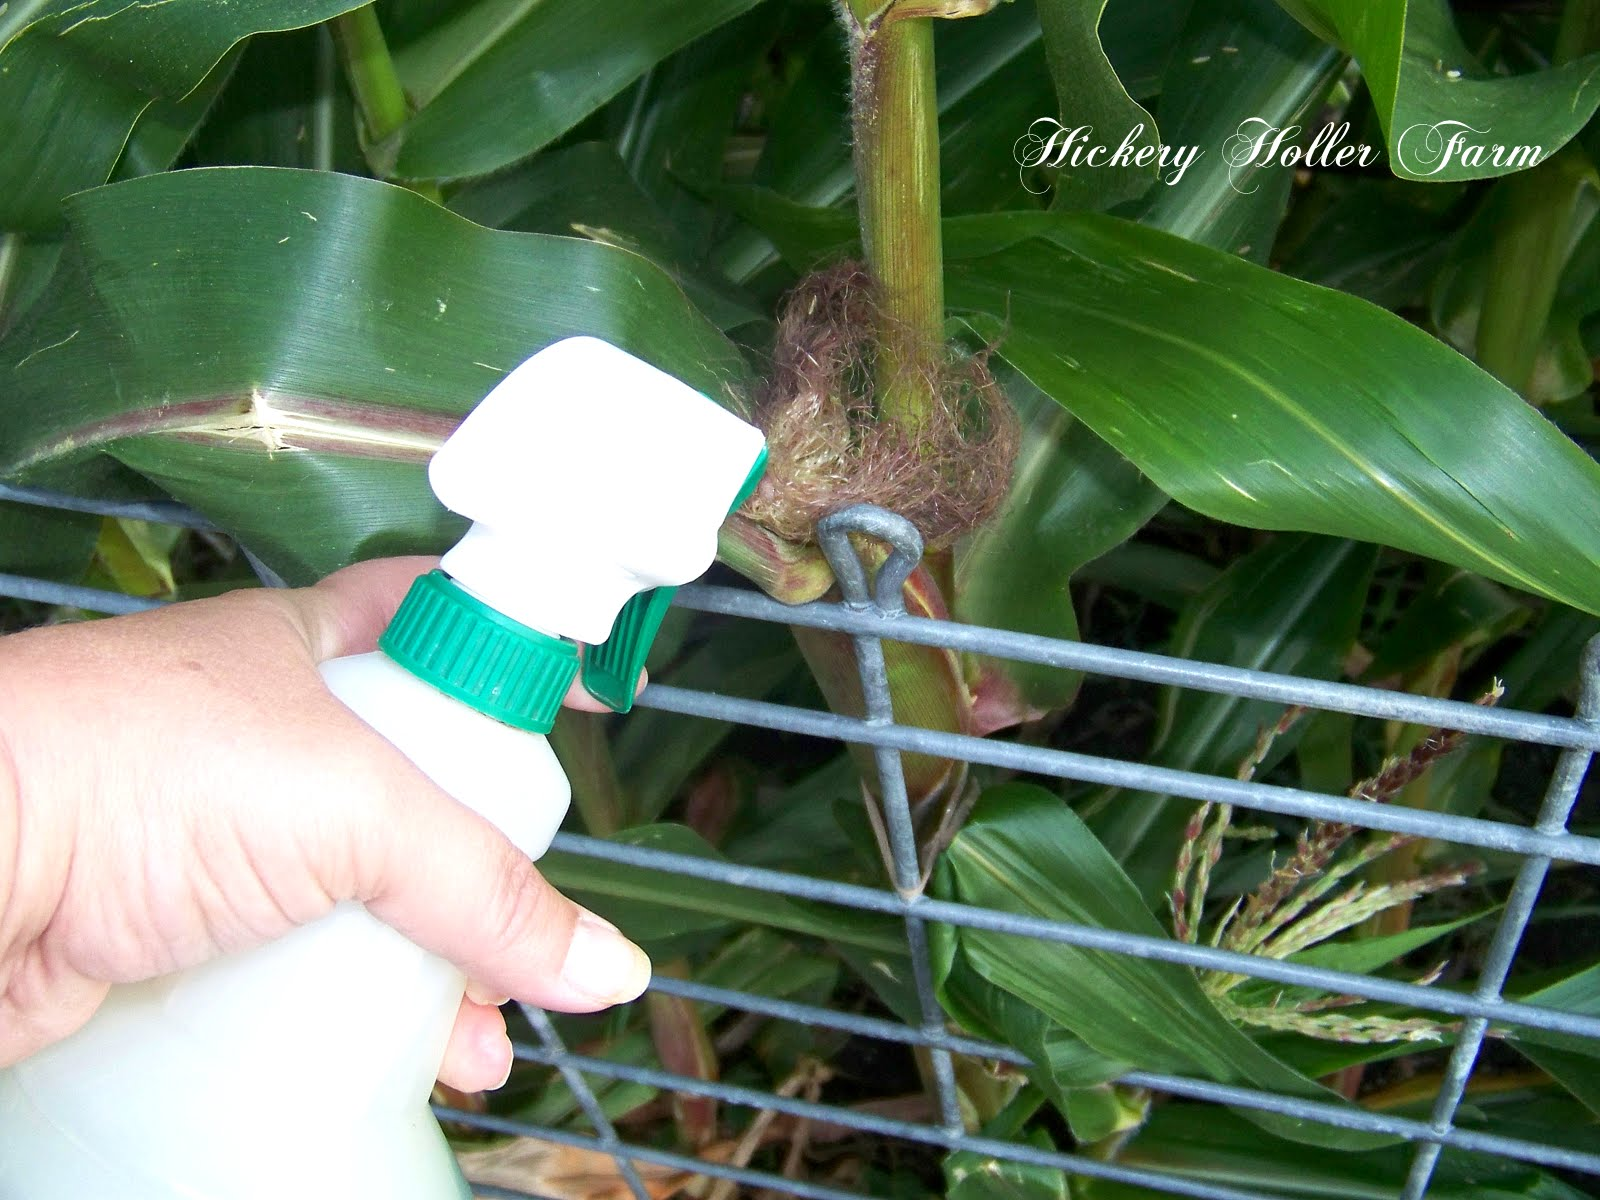 Hickery Holler Farm: Preventing Corn Ear Worms